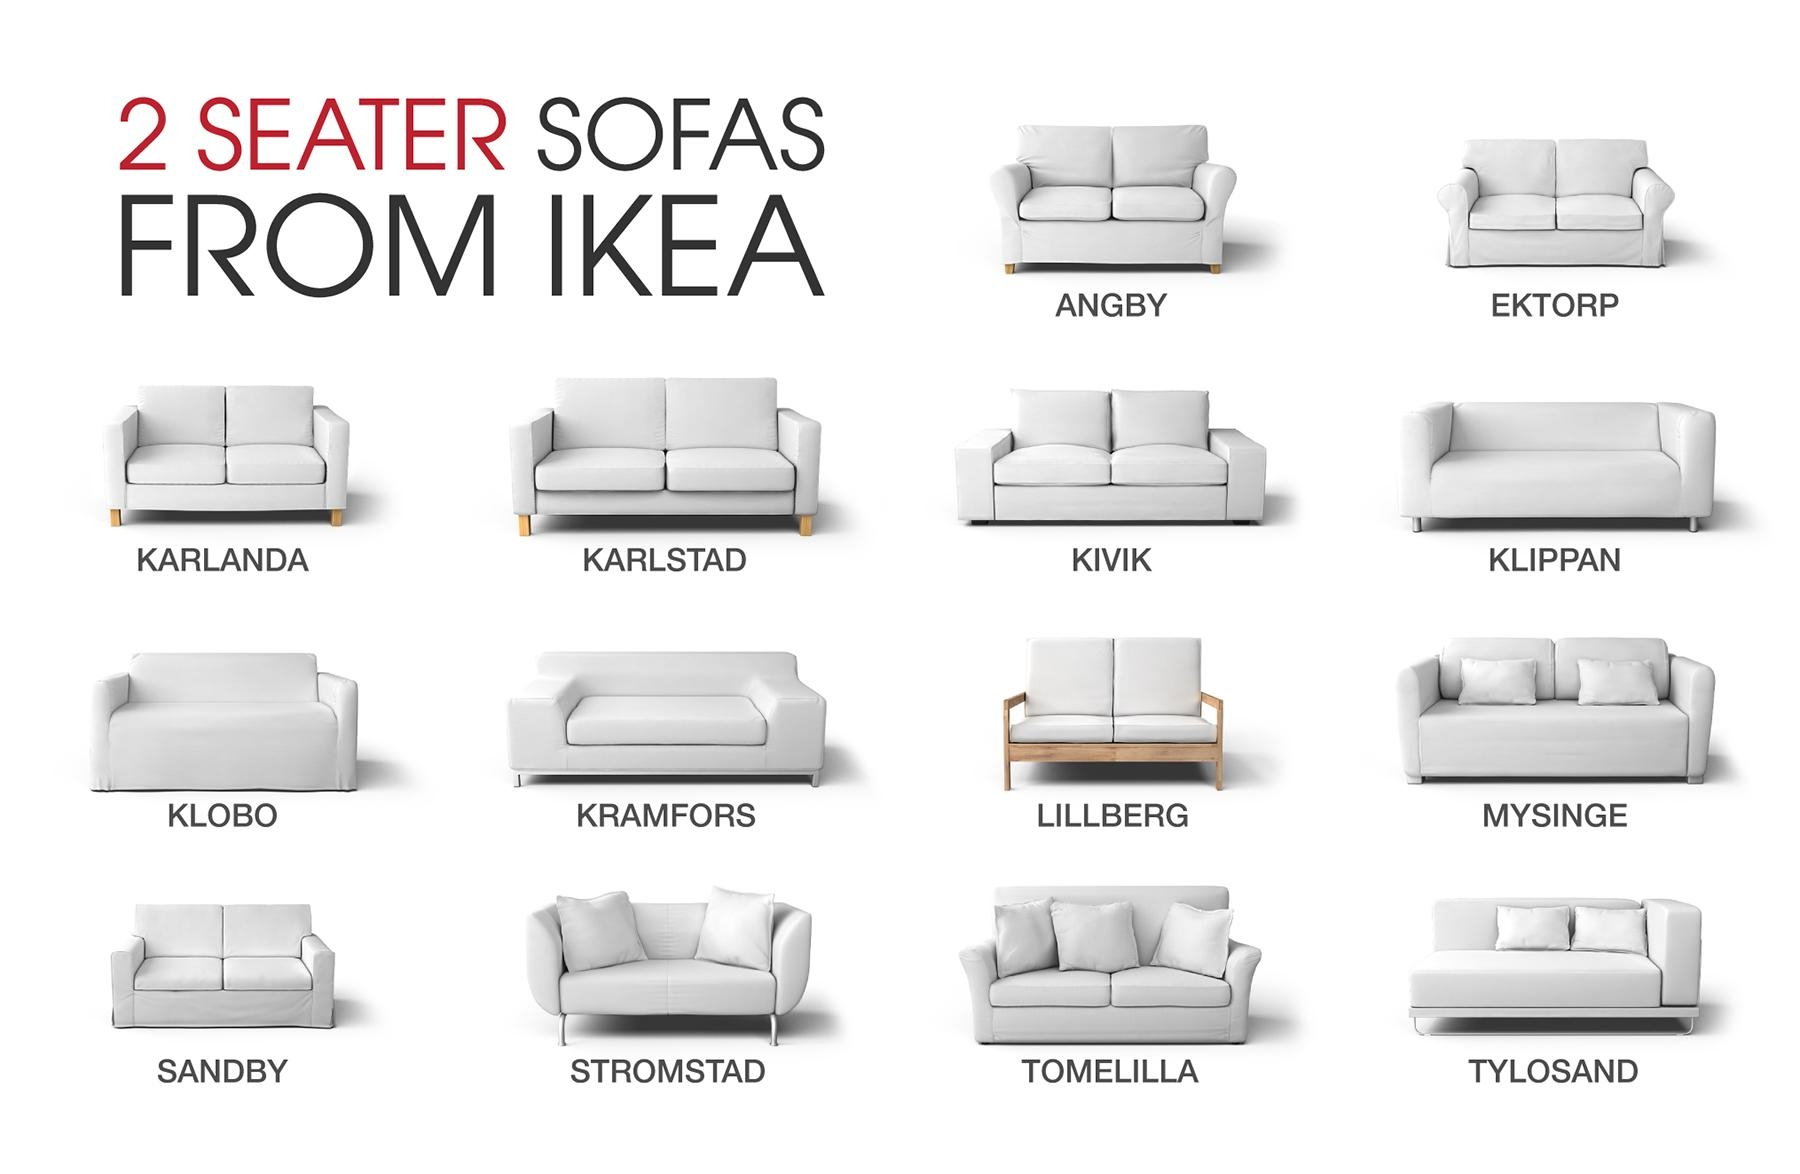 Ikea Sofa Covers For Discontinued Ikea Couch Models Pertaining To Lillberg Sofa Covers (Image 9 of 20)